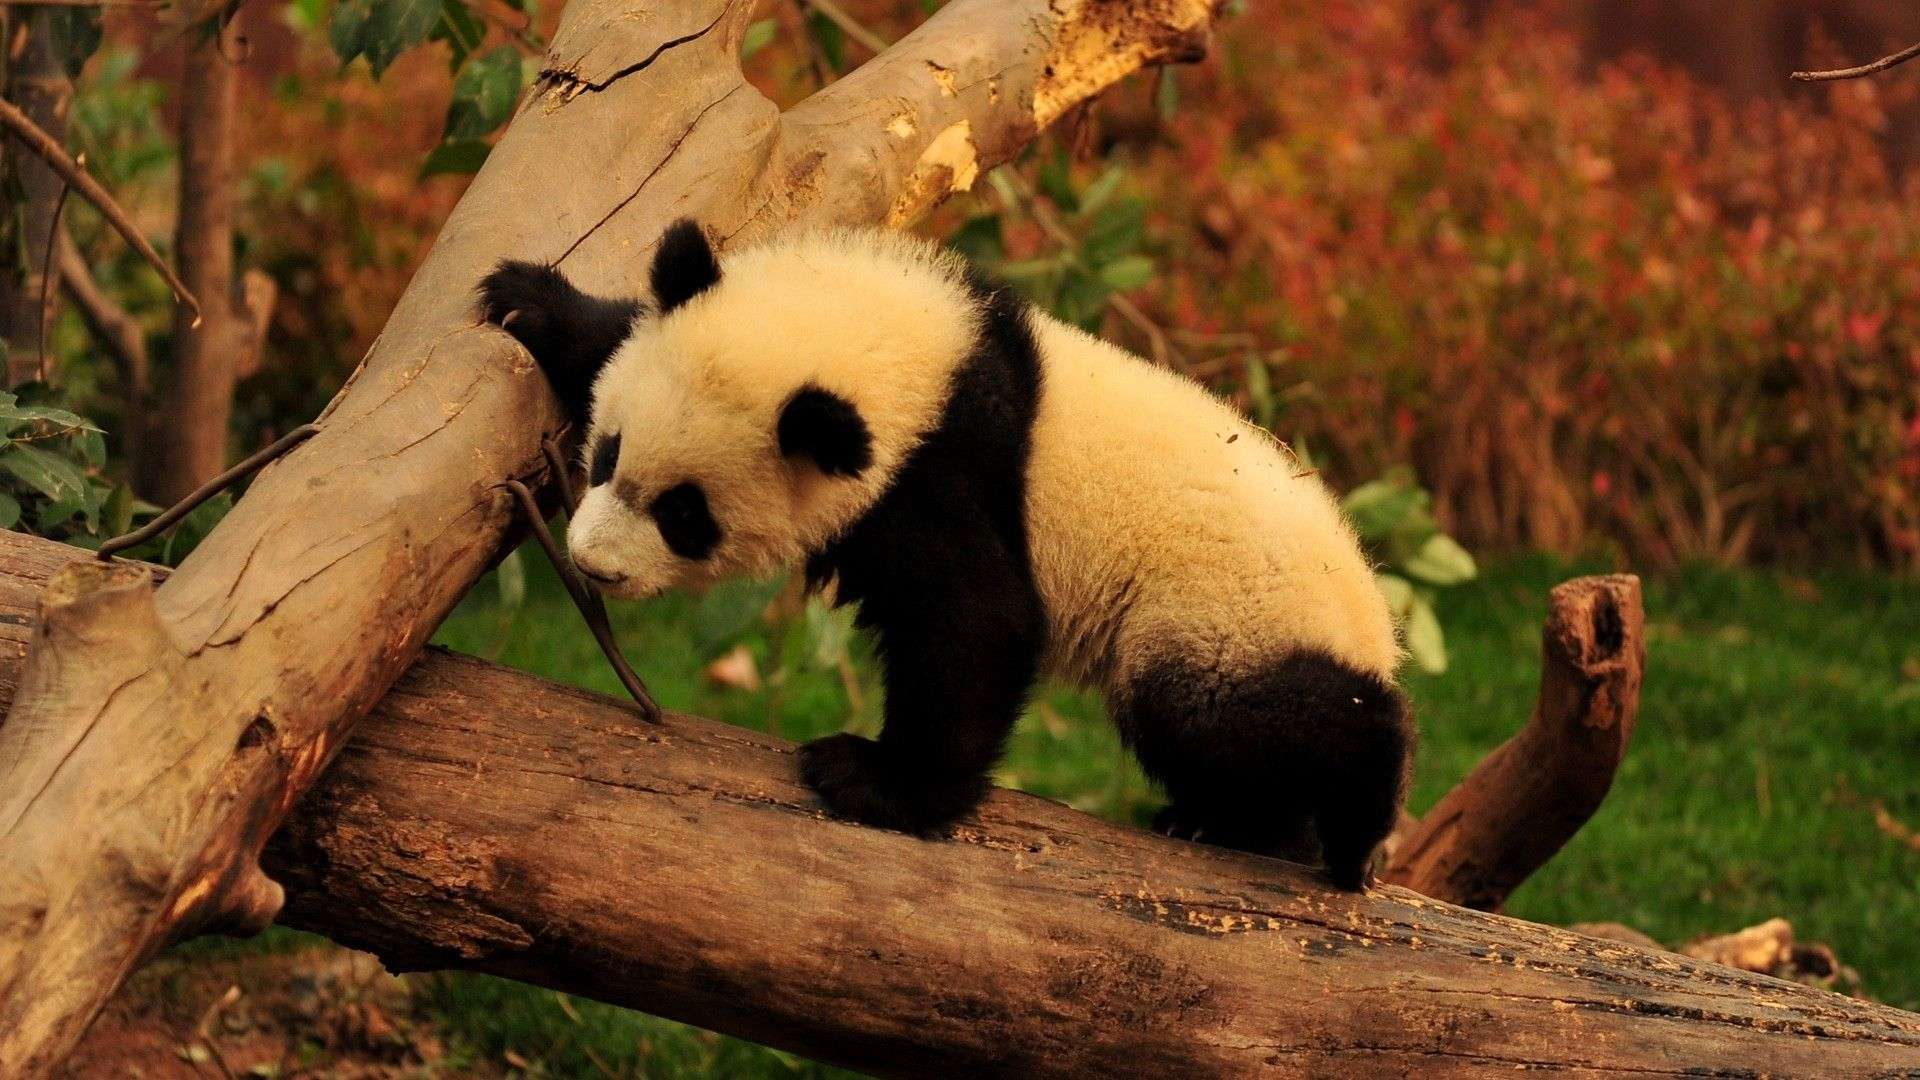 The Giant Panda Pictures